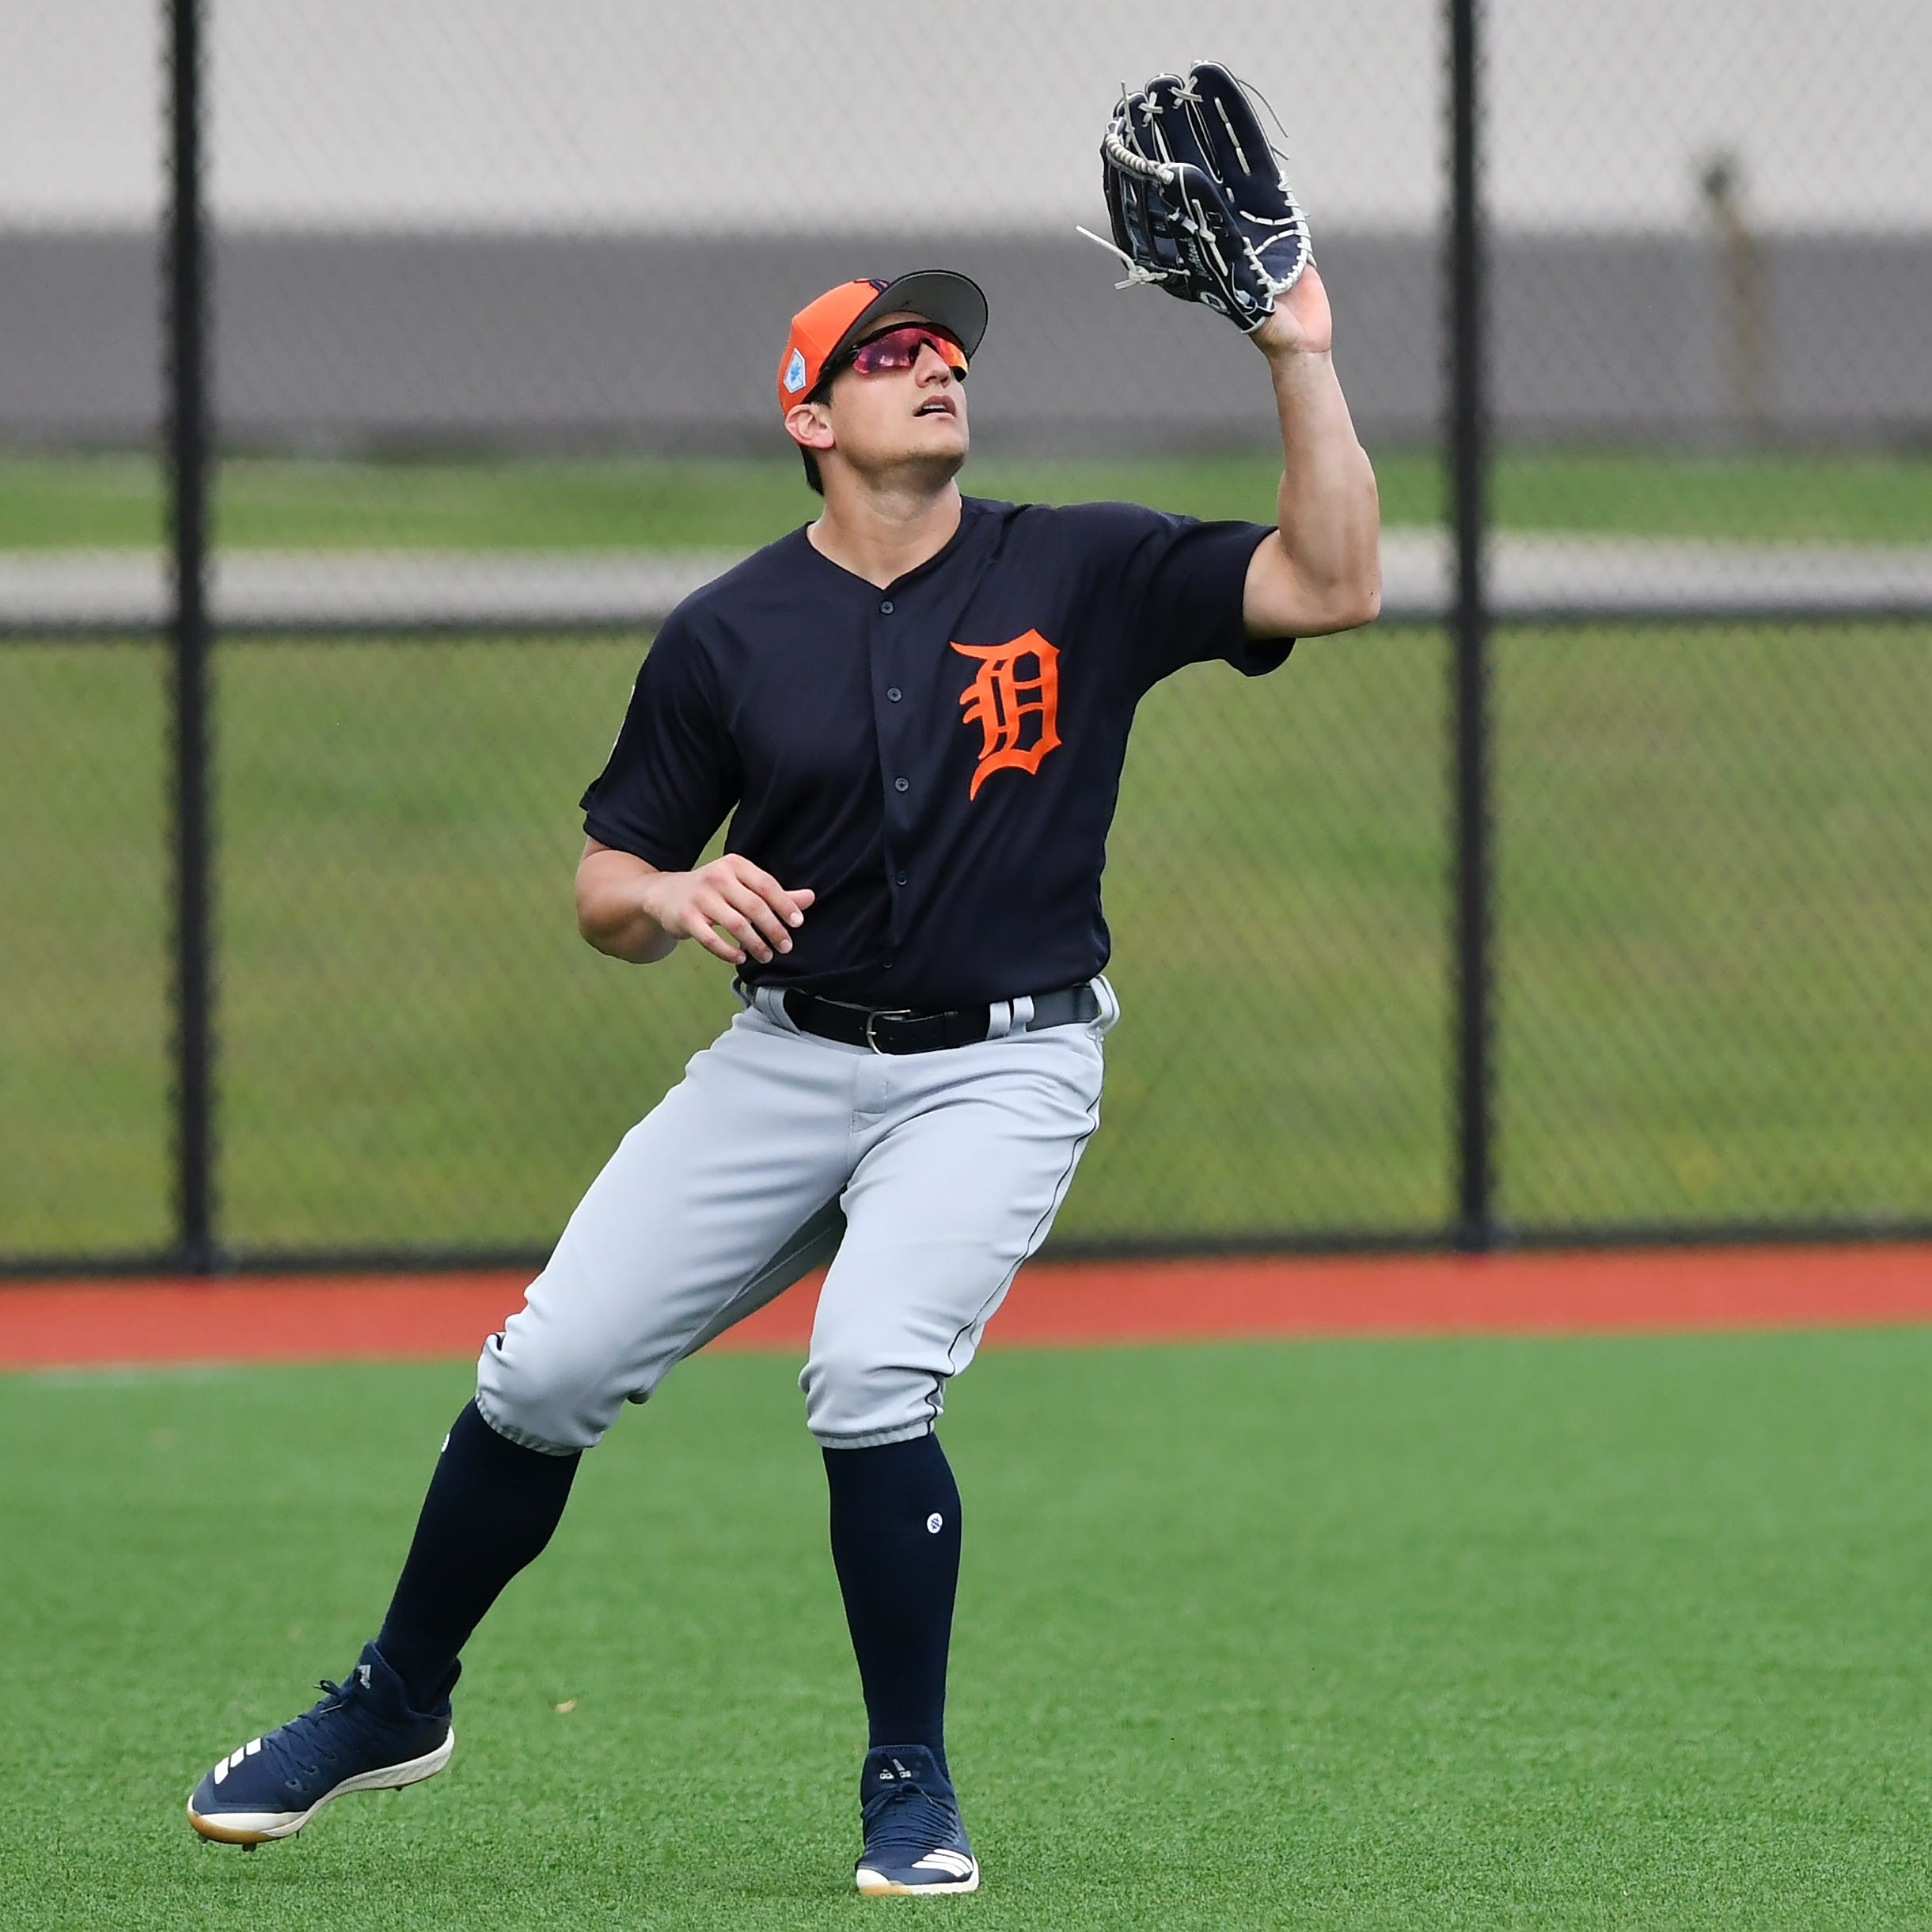 Tigers still mulling options to replace JaCoby Jones in center field